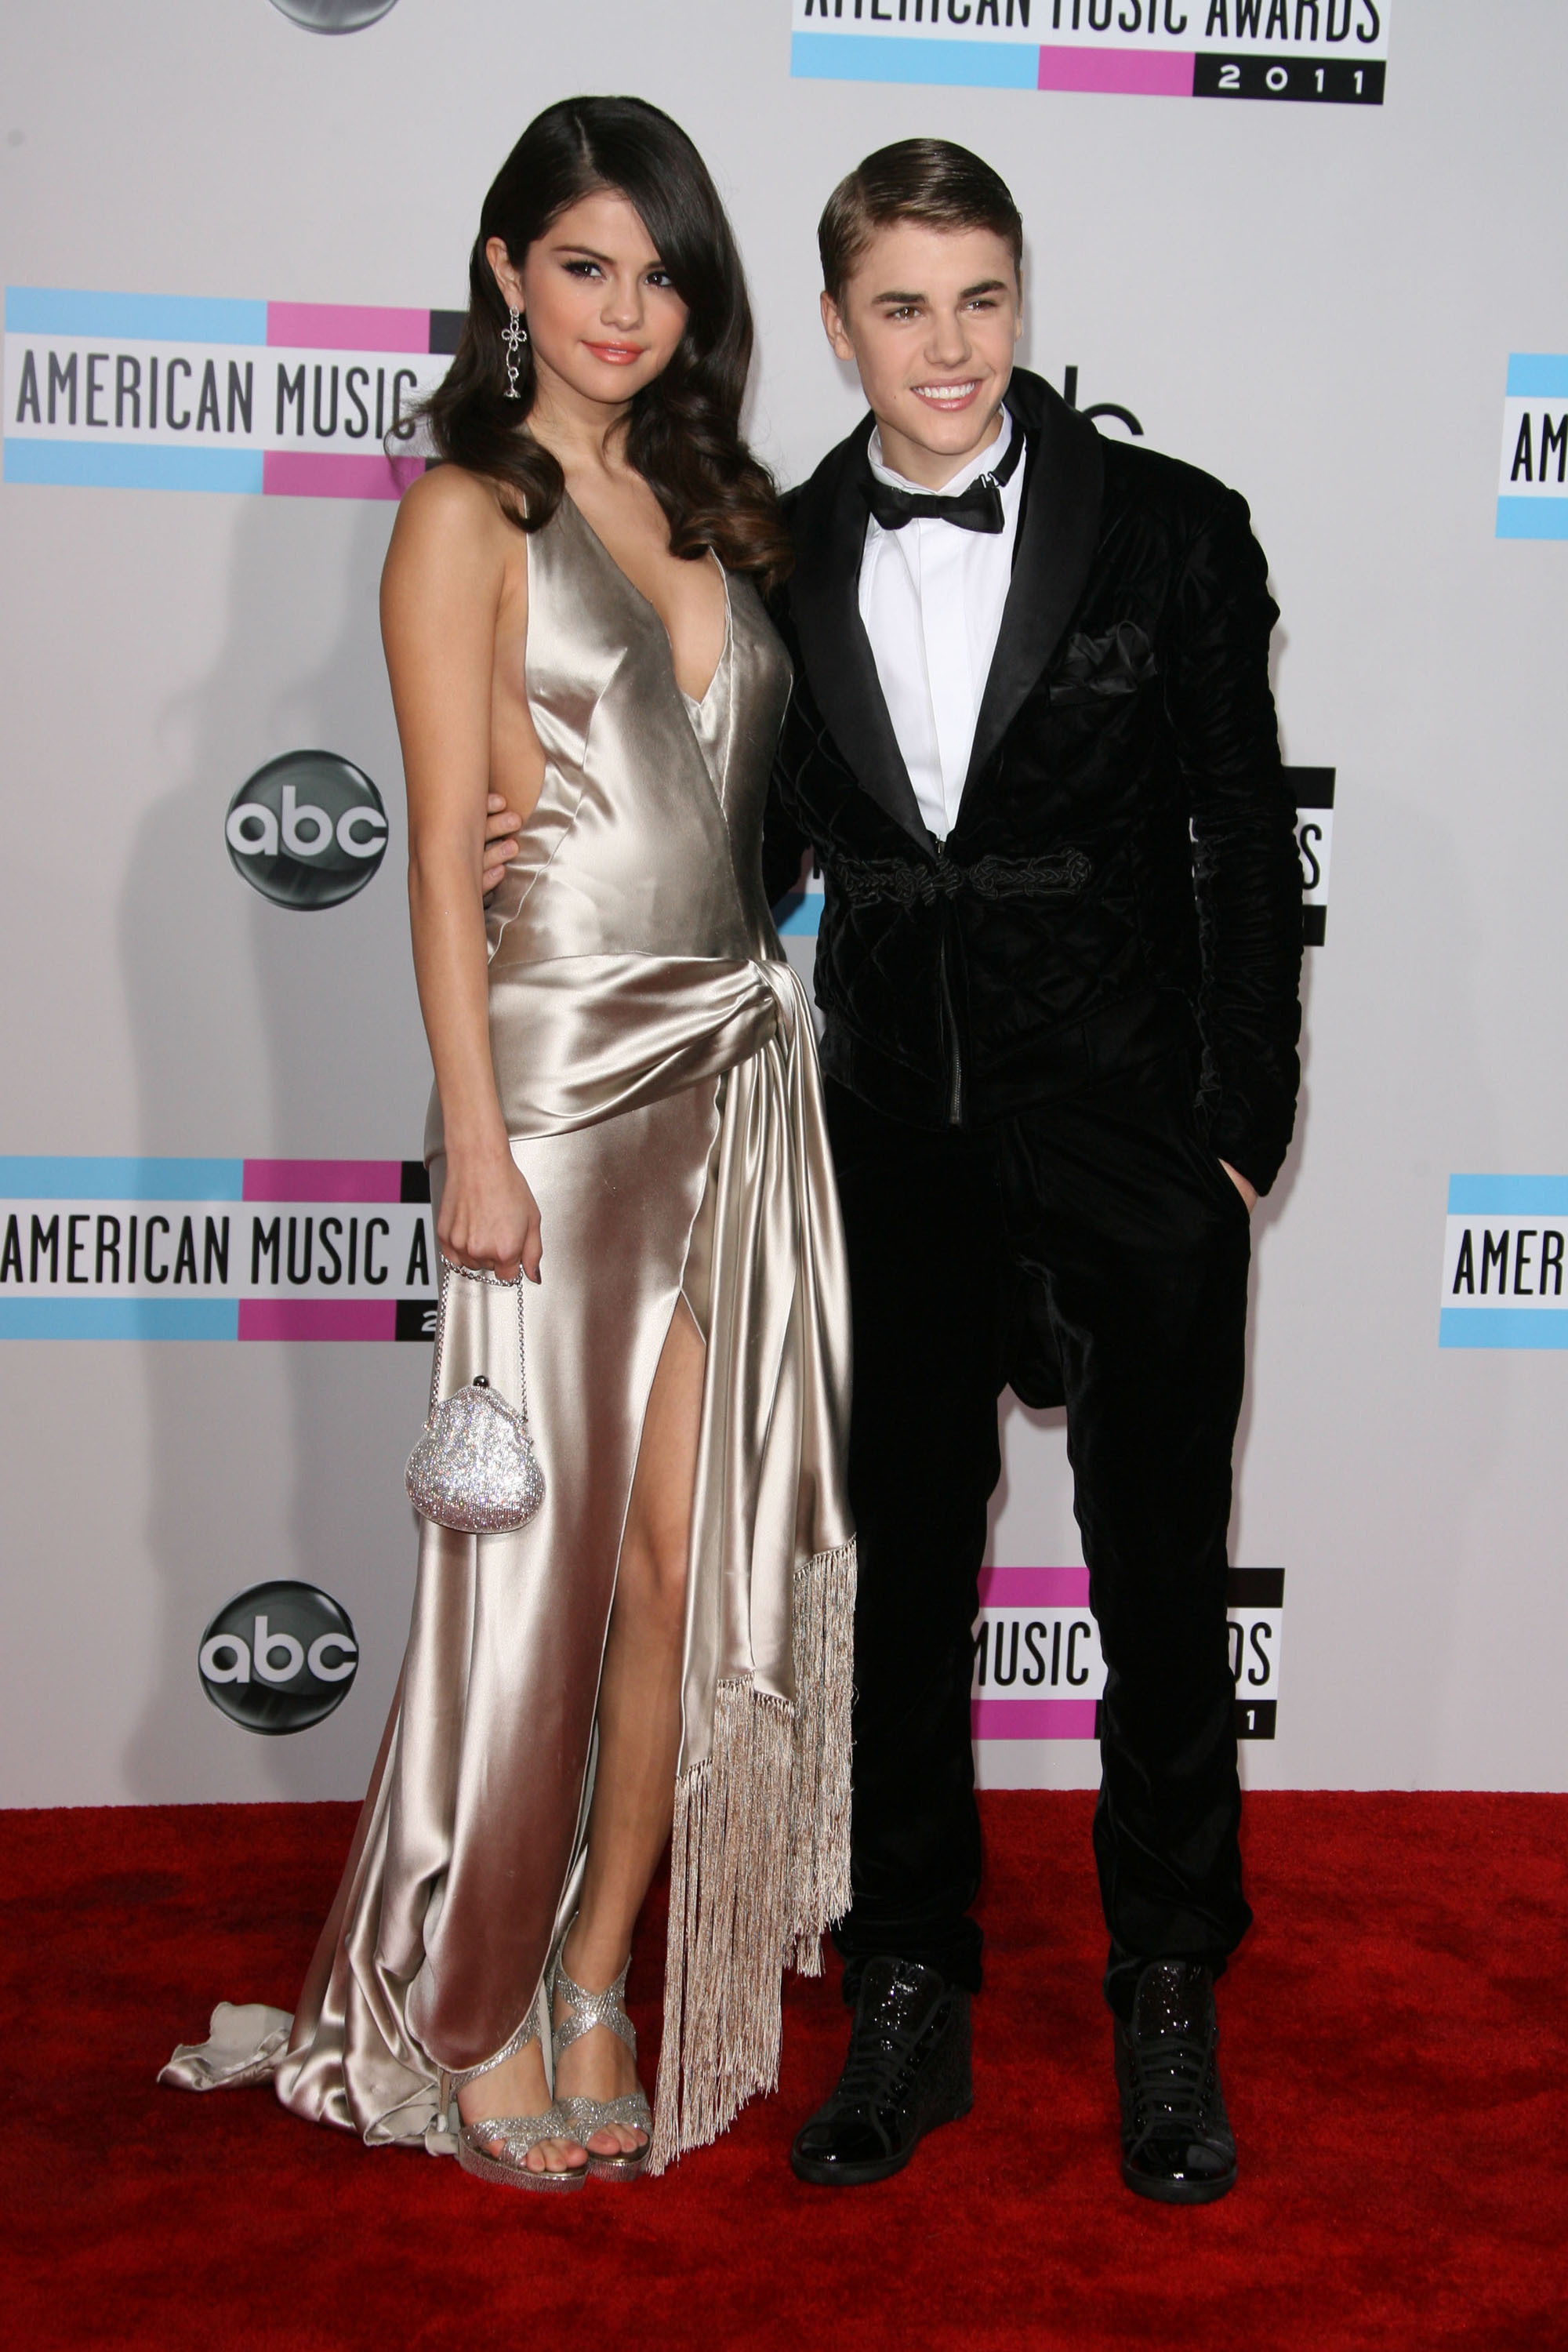 Selena Gomez and Justin Bieber attend the American Music Awards at the Nokia Theatre L.A. Live in Los Angeles on Nov. 20, 2011.